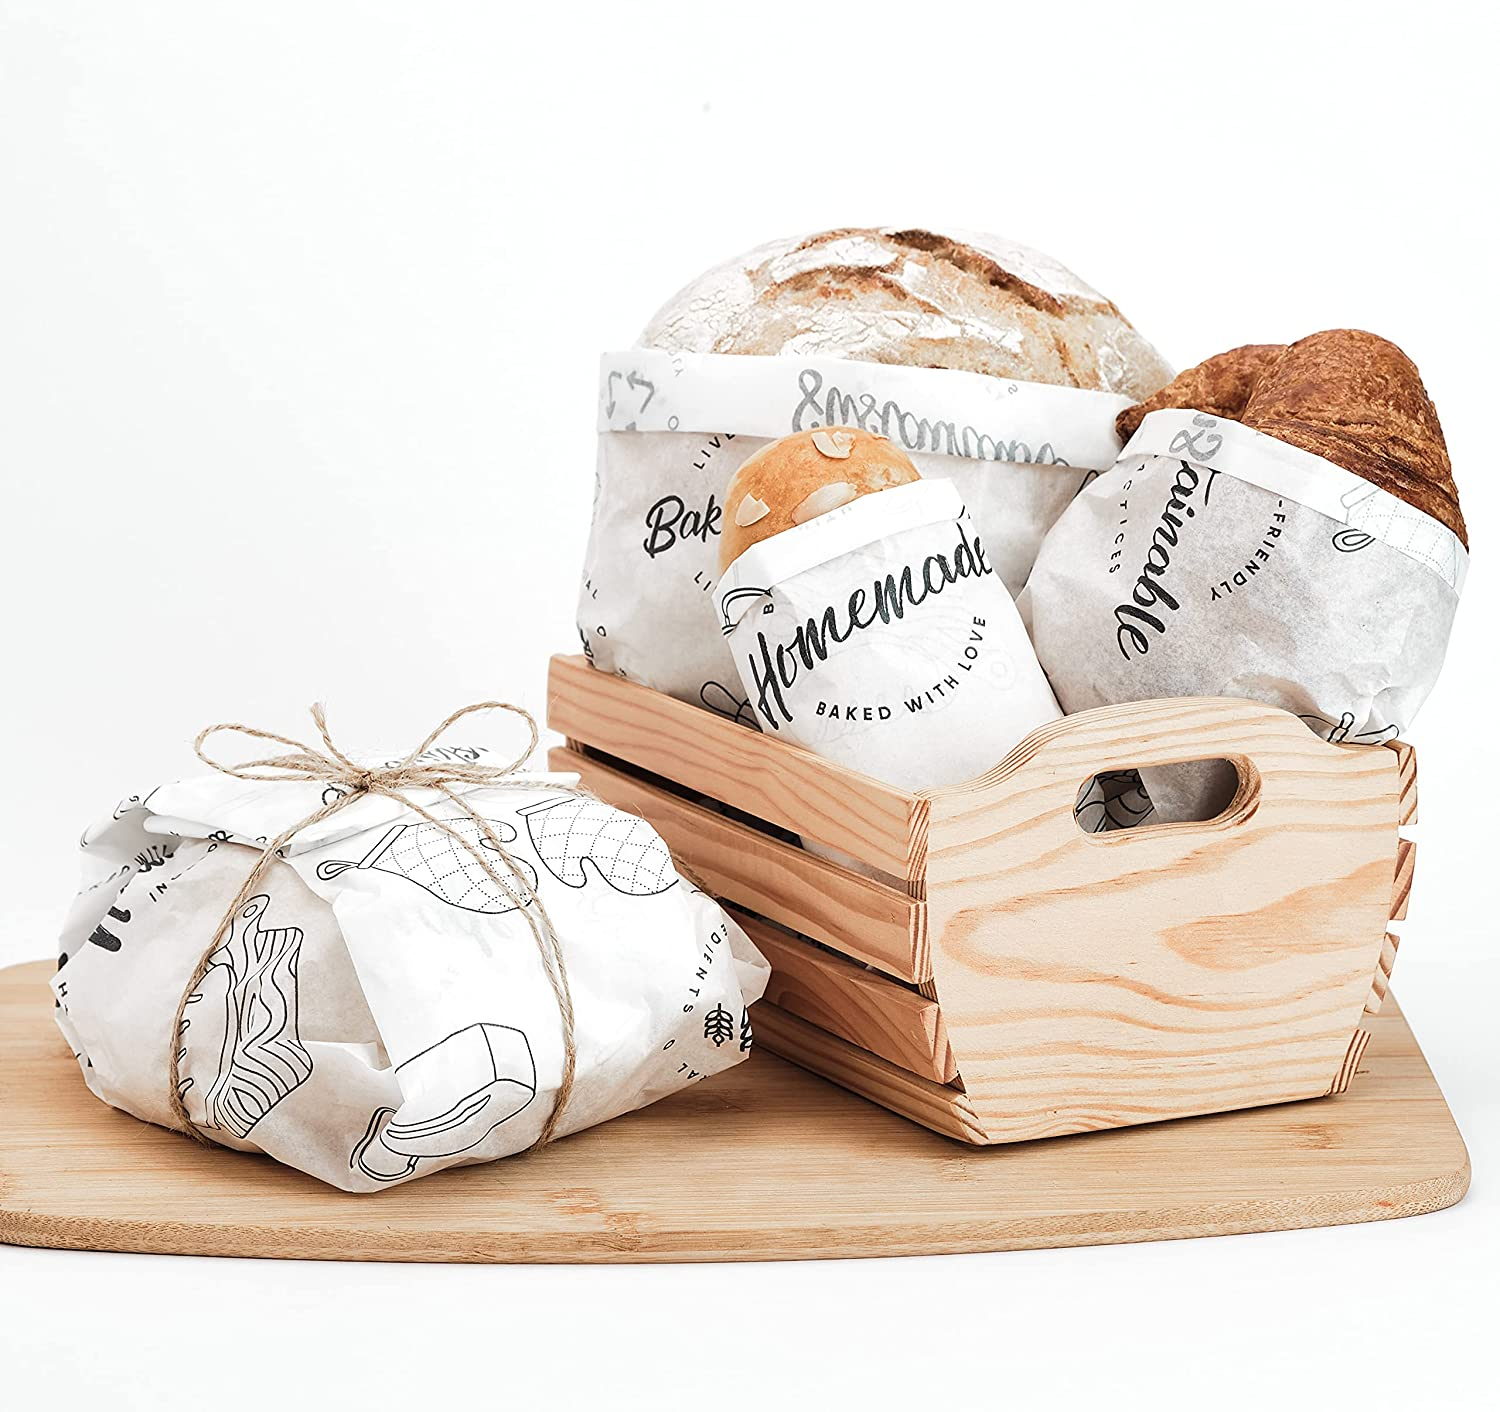 30 Pcs. Paper Bread Wrapper Bags for Homemade Sourdough. Large, Plastic Free with 30 Stickers & Twine. Packaging Kit For Baked Goods. Reusable for Baking, Greaseproof, Compostable – 20 x 24 inches